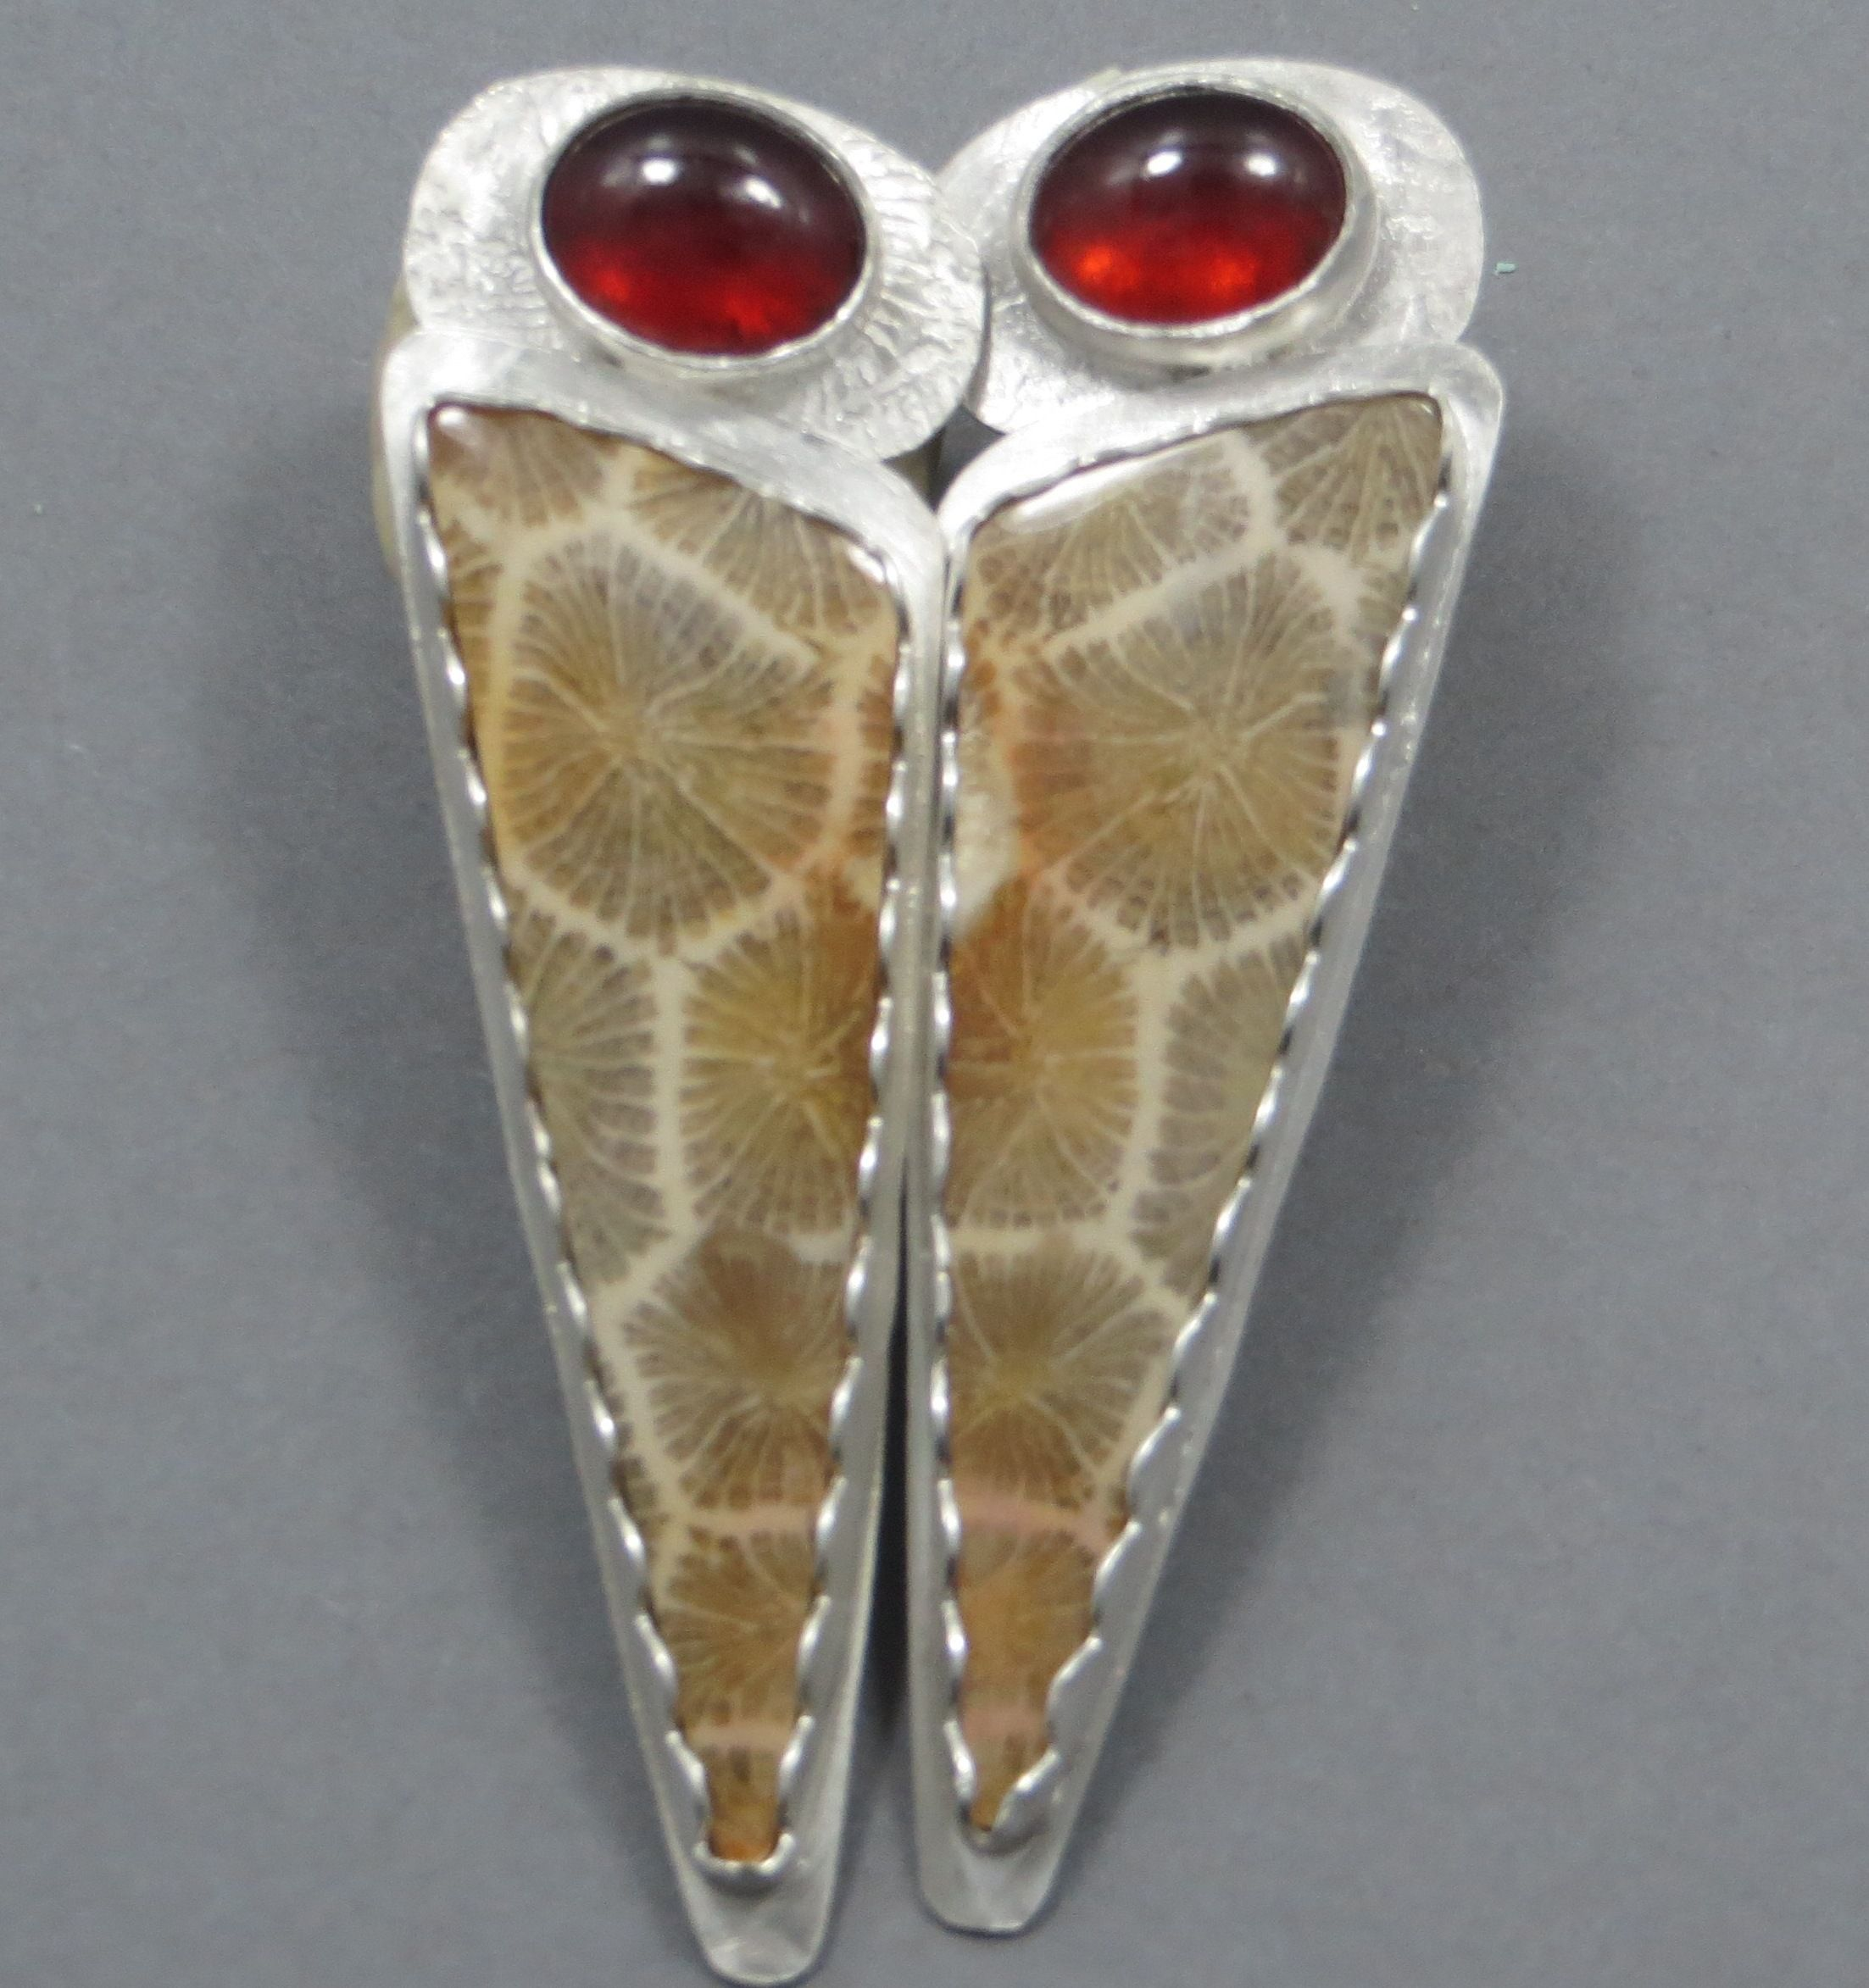 Fine silver earrings fossilized coral and garnets